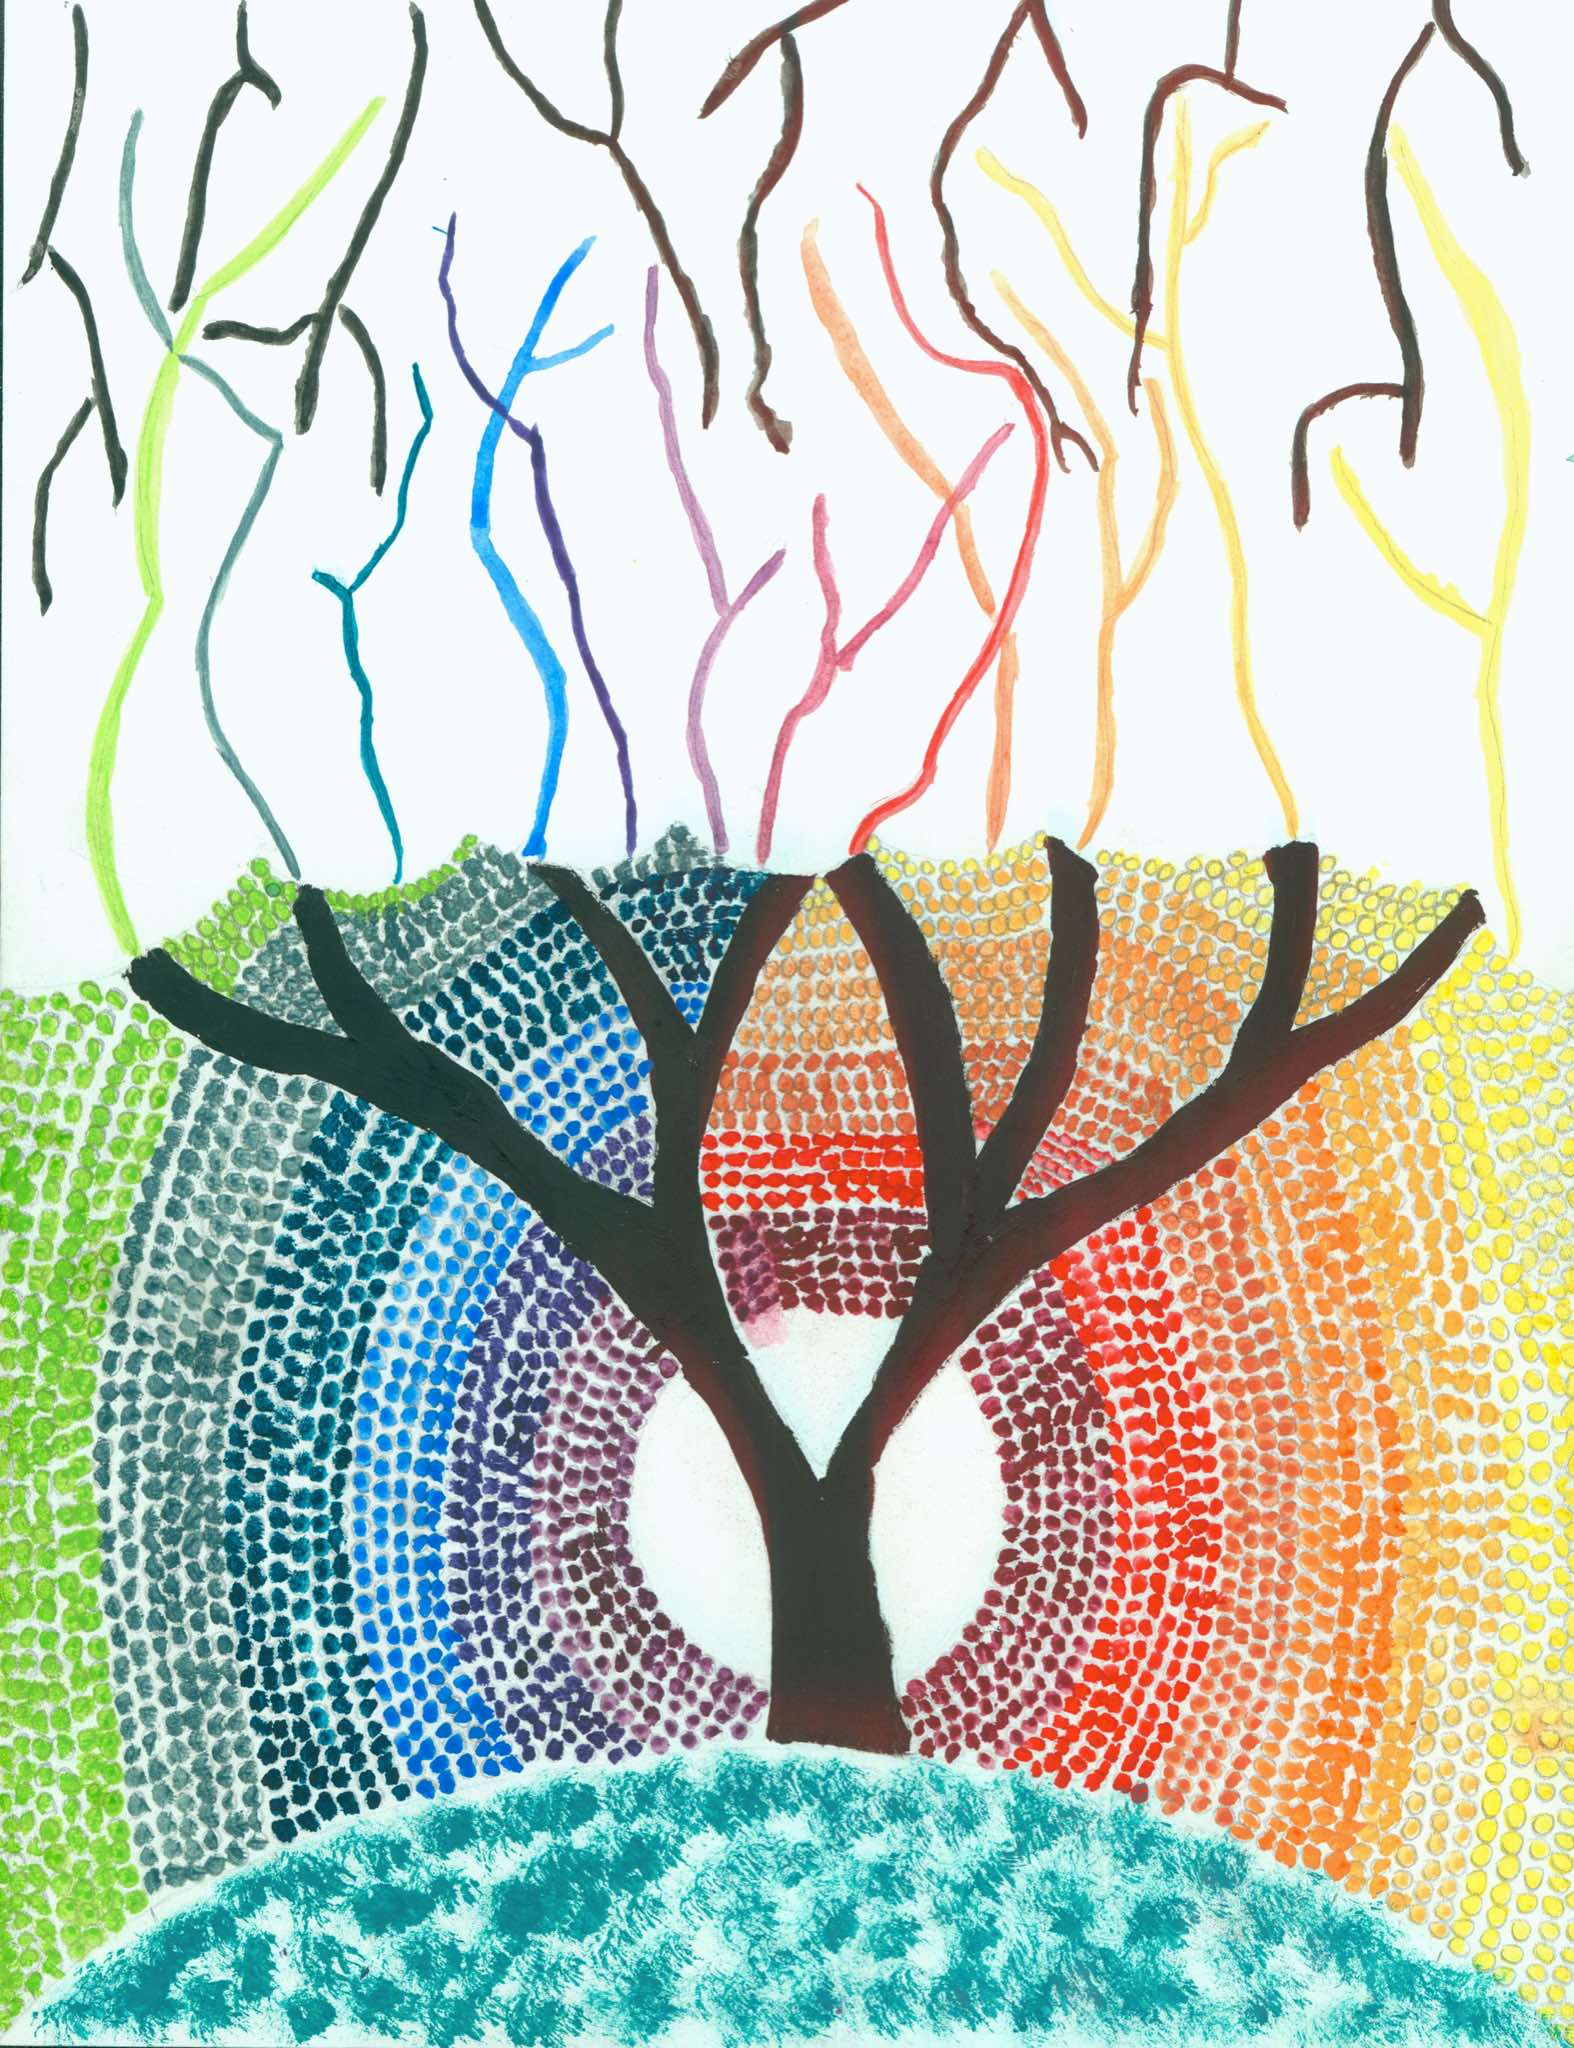 73d8ef03a JGHS Art One students studied the traditional color wheel organization  system and then created an original version based on a theme or design of  their ...